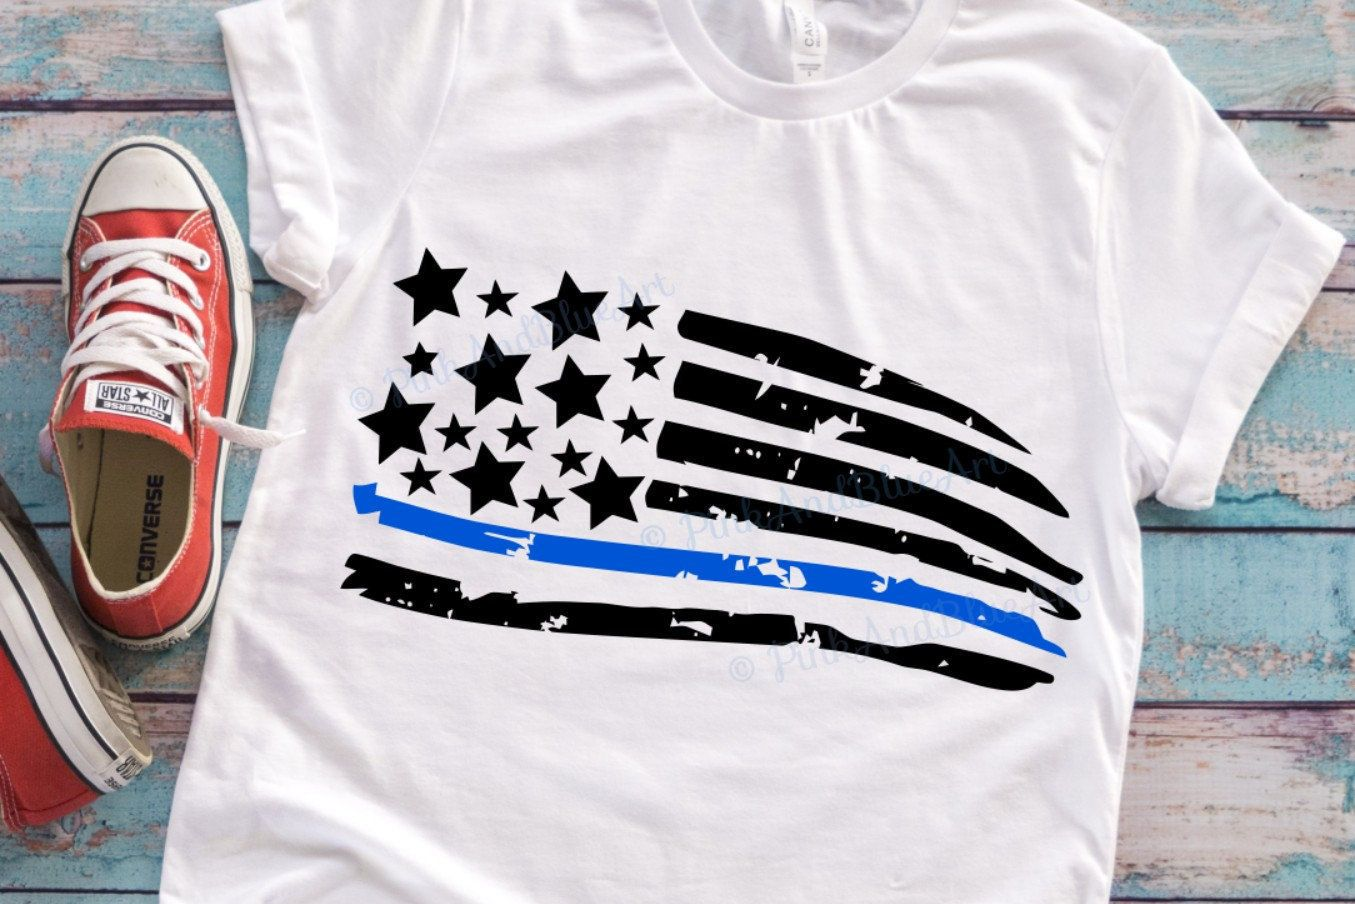 Thin blue line svg, Distressed american flag svg, law